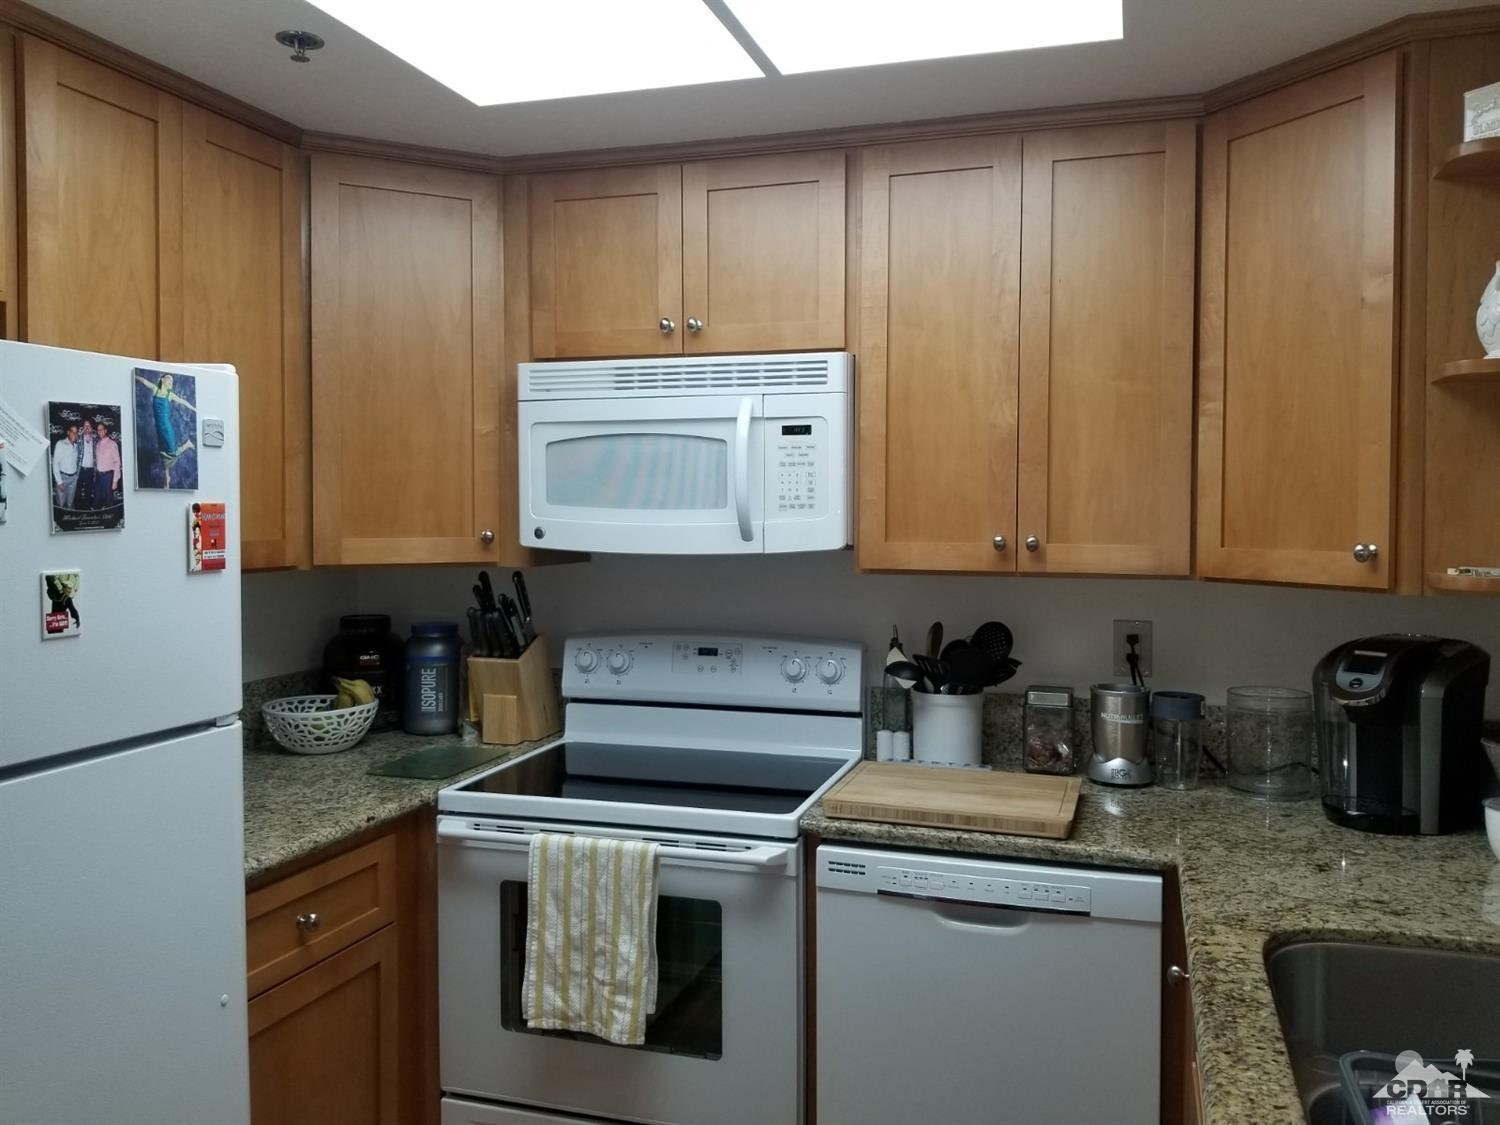 2700 Golf Club Dr, Palm Springs, California 92264, 1 Bedroom Bedrooms, ,1 BathroomBathrooms,Residential,Sold,2700 Golf Club Dr,219016059